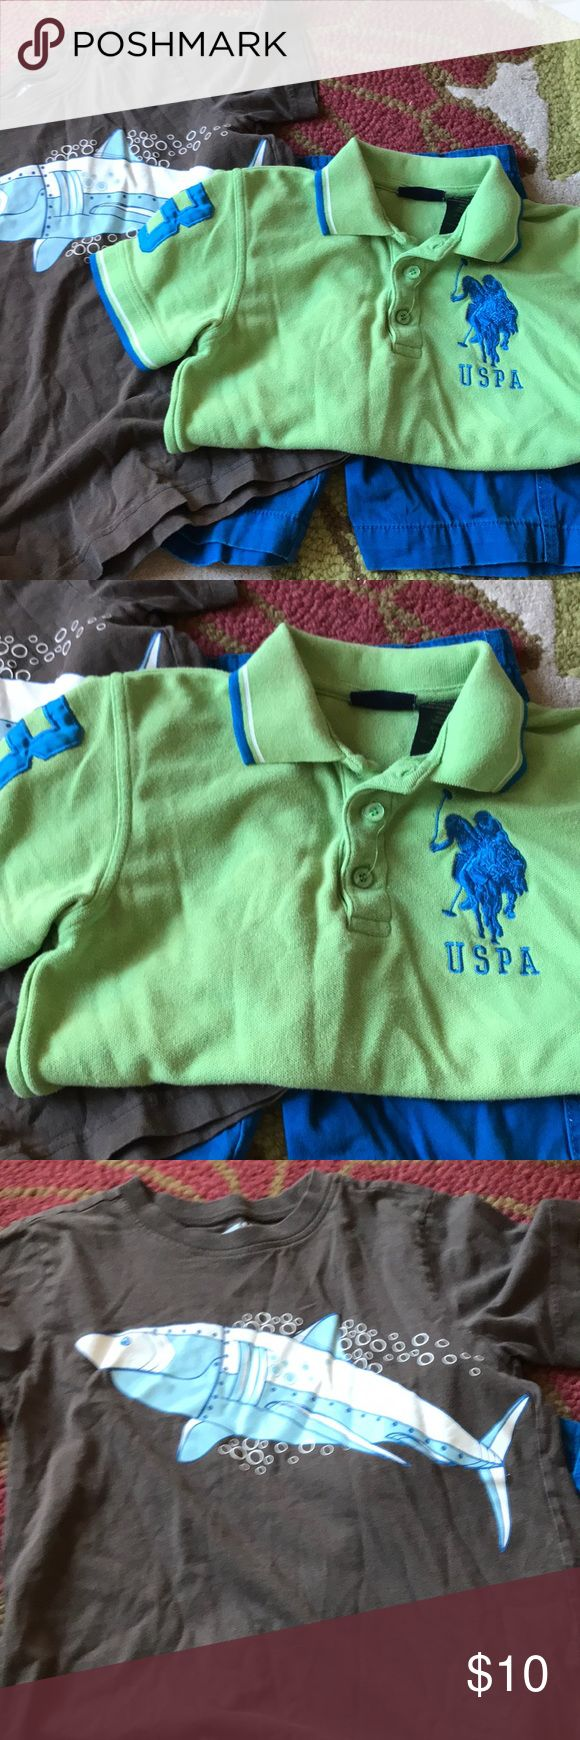 Polo shirt .. shorts.. and T-shirt Polo shirt blue and lime green shorts blue T-shirt brown with fish that is blue and white minute no rips tears or stains Matching Sets